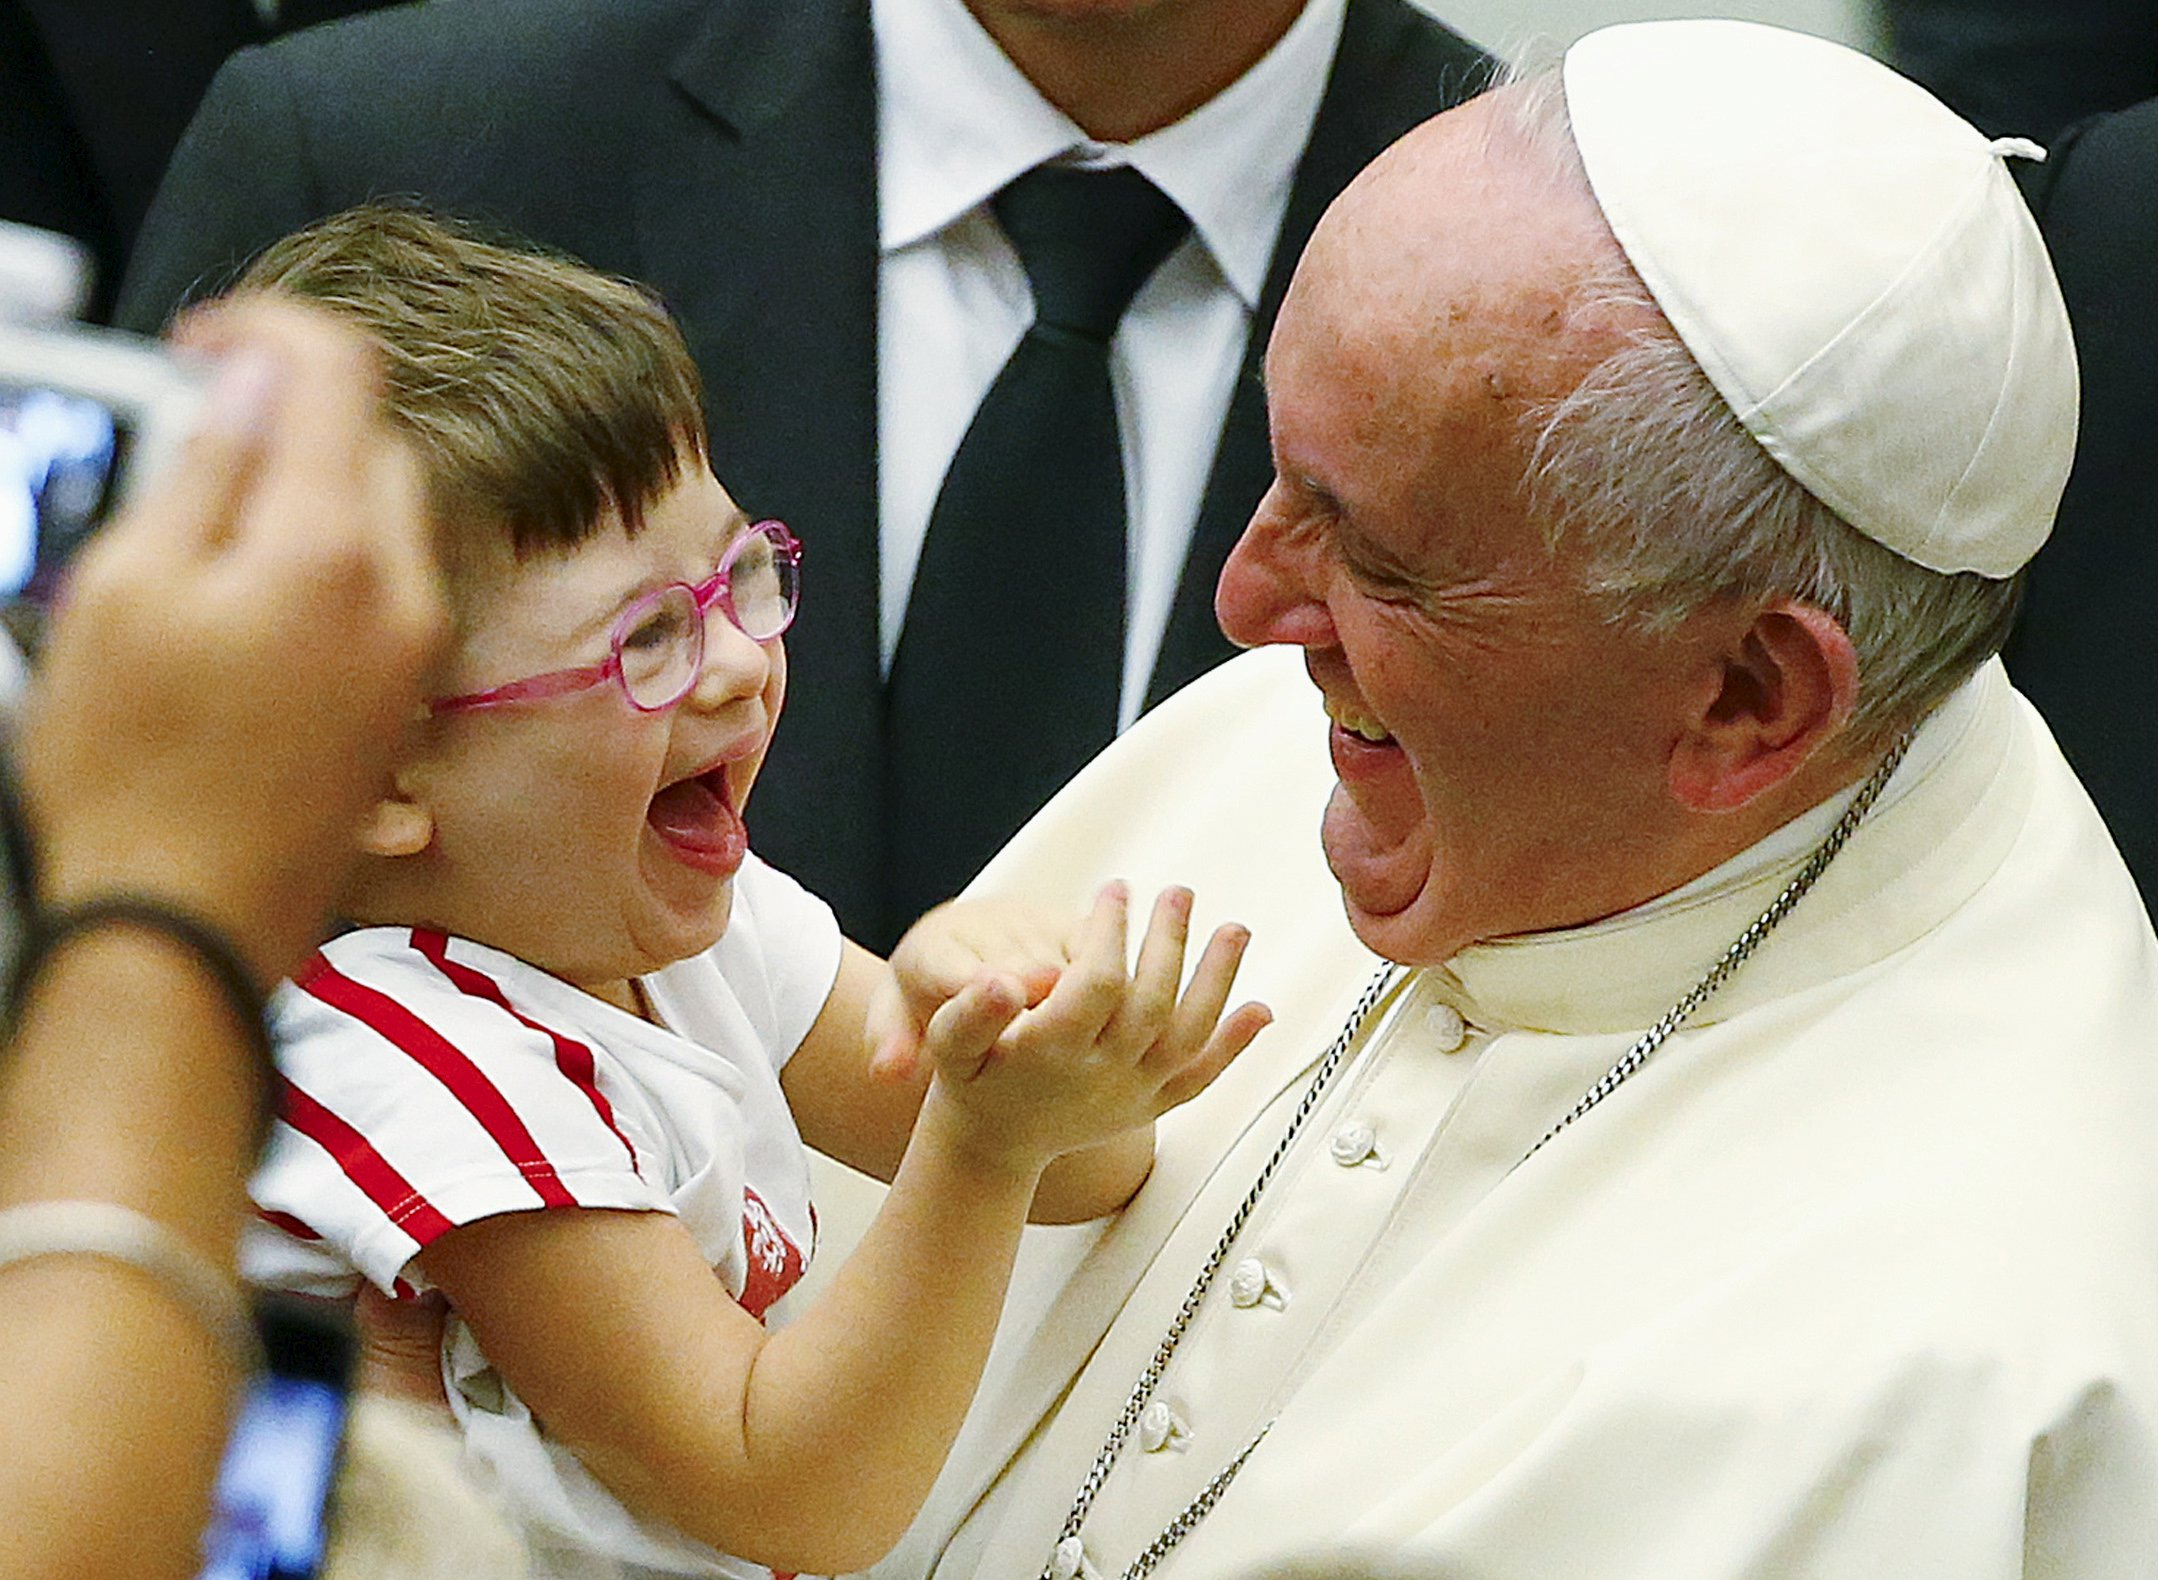 Pope Francis laughs with a baby during a special audience with parish cells for the evangelization in Paul VI hall at the Vatican September 5, 2015. REUTERS/Tony Gentile